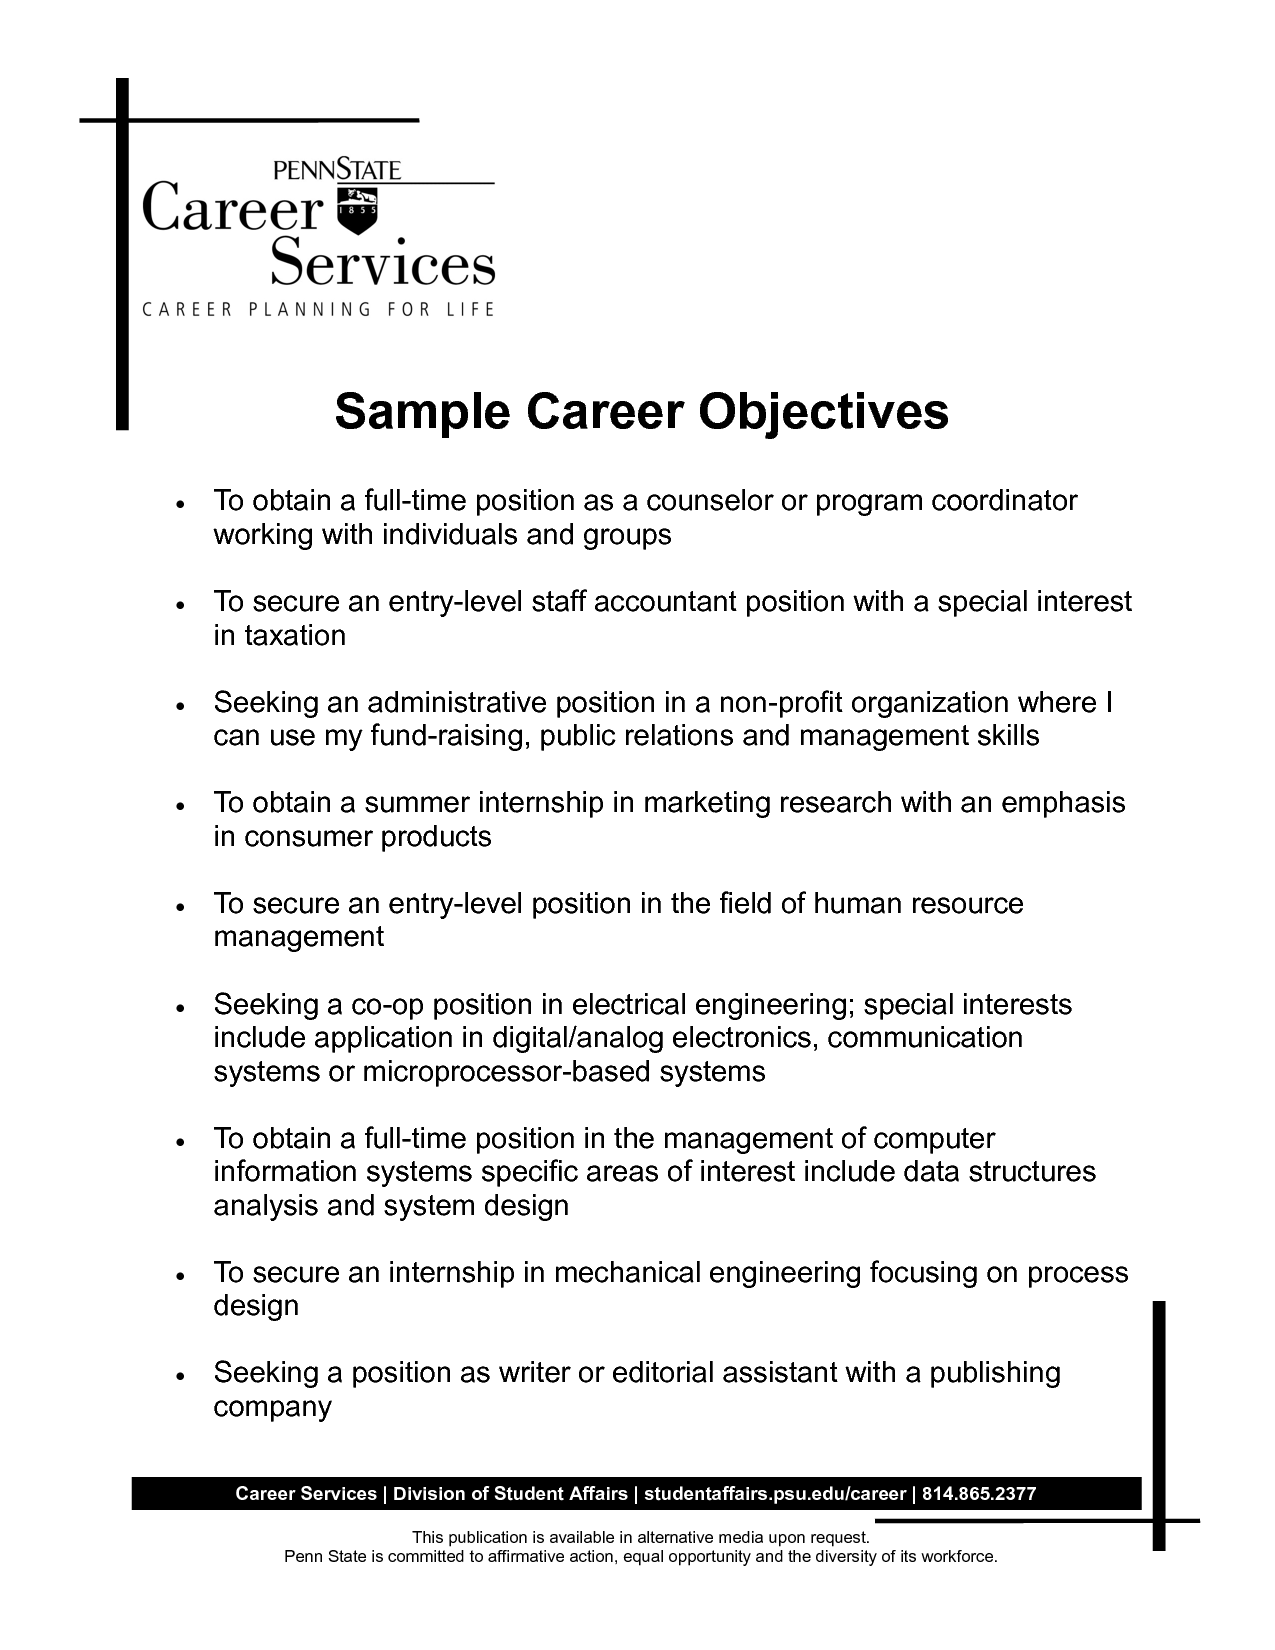 Objectives In Resume Career Objective Resume Accountant  Httpwwwresumecareer